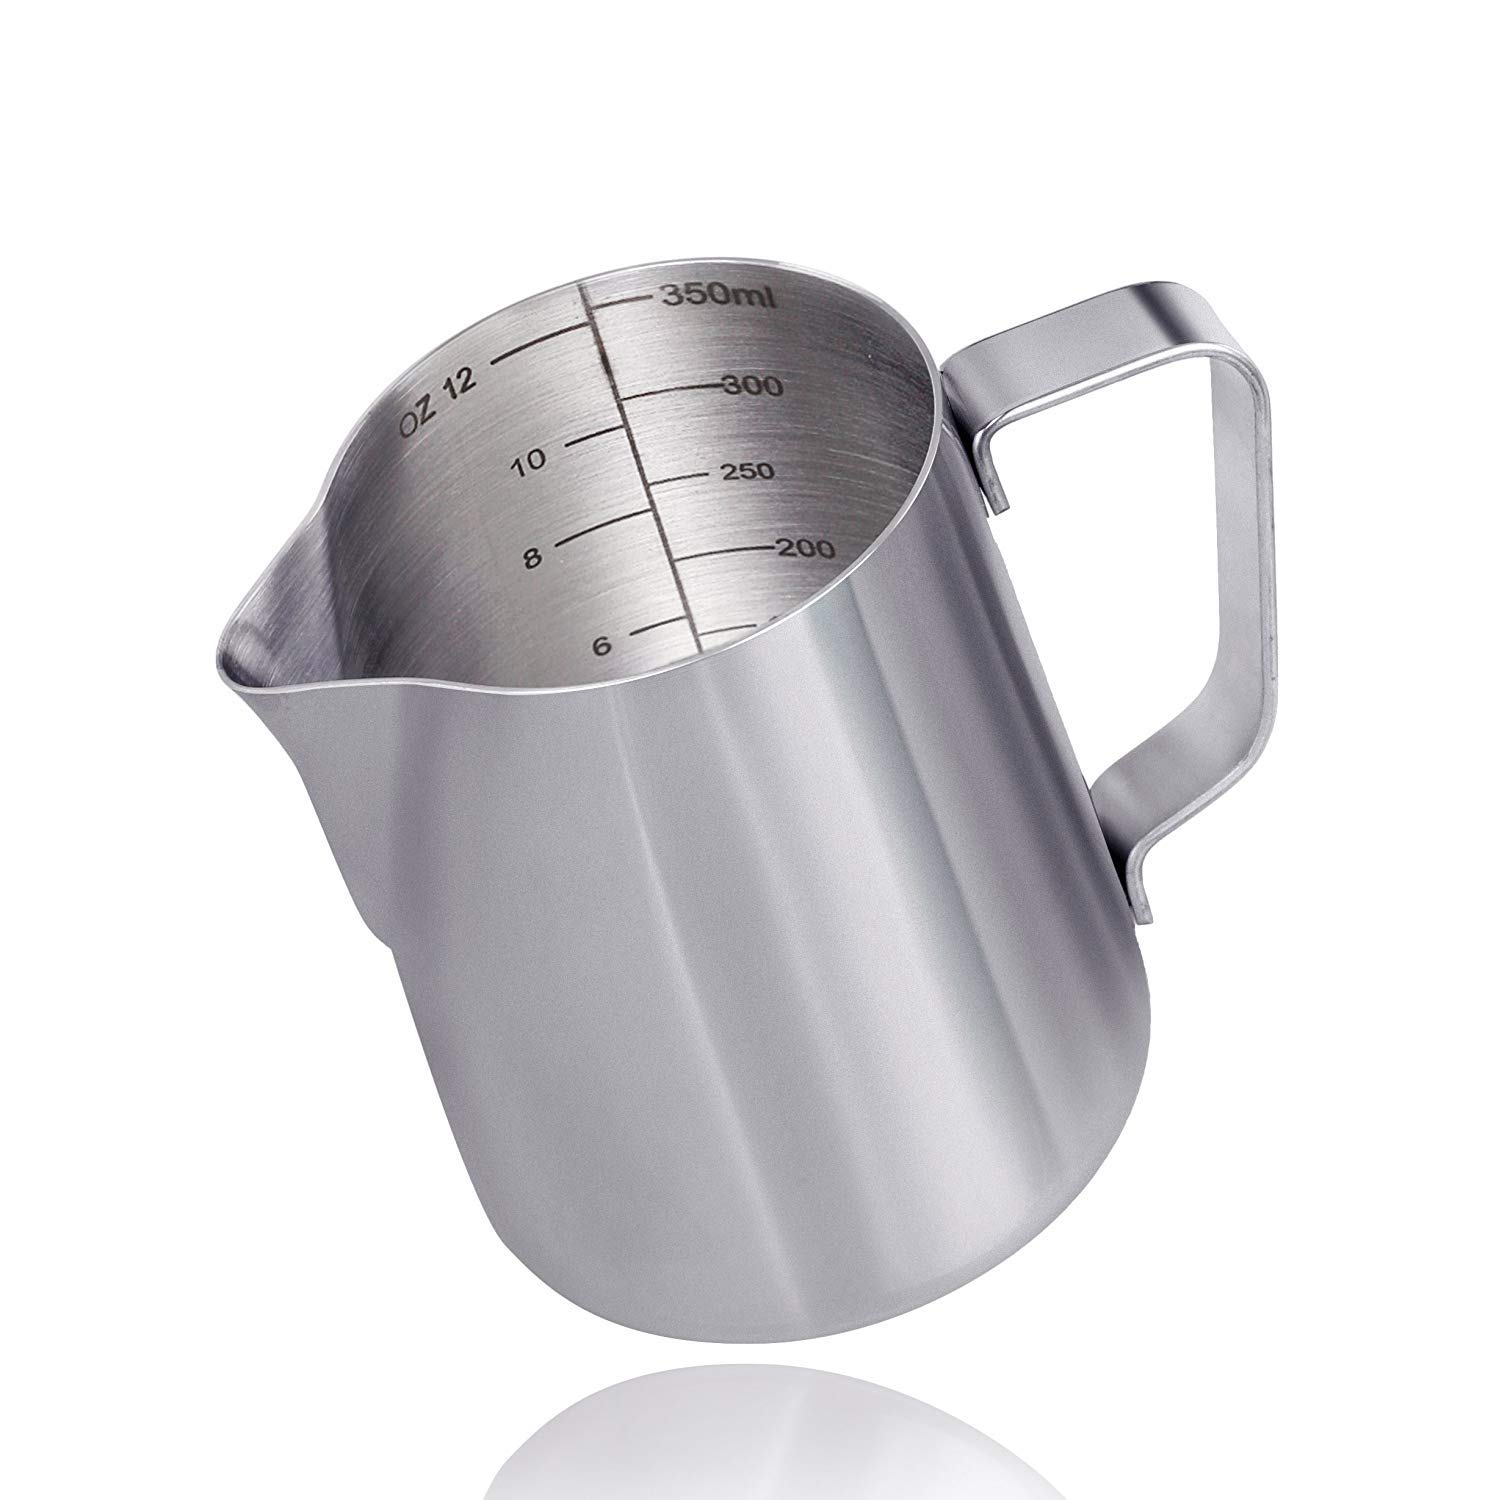 Garland Cup With Measurement Marking For Milk Tea Coffee And Latte Art iMucci 12 oz 304 18//8 Stainless Steel Milk Frothing Pitcher